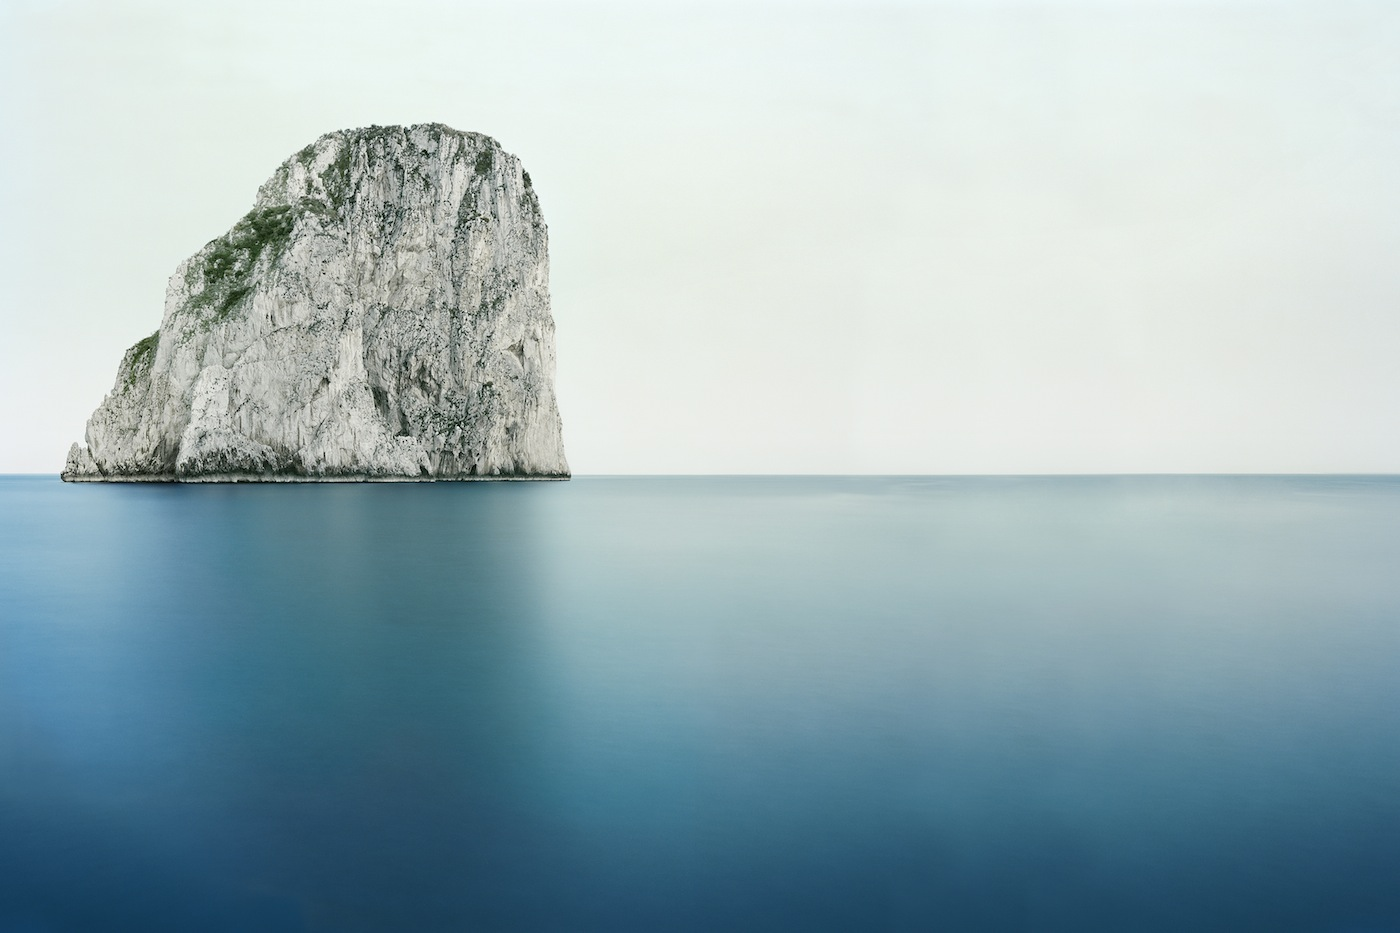 Francesco Jodice, Capri. The Diefenbach Chronicles, 2013, inkjet on cotton paper, dibond aluminium, plexiglass, woodframe, cm 150 x 225, courtesy Galleria Michela Rizzo, Venezia